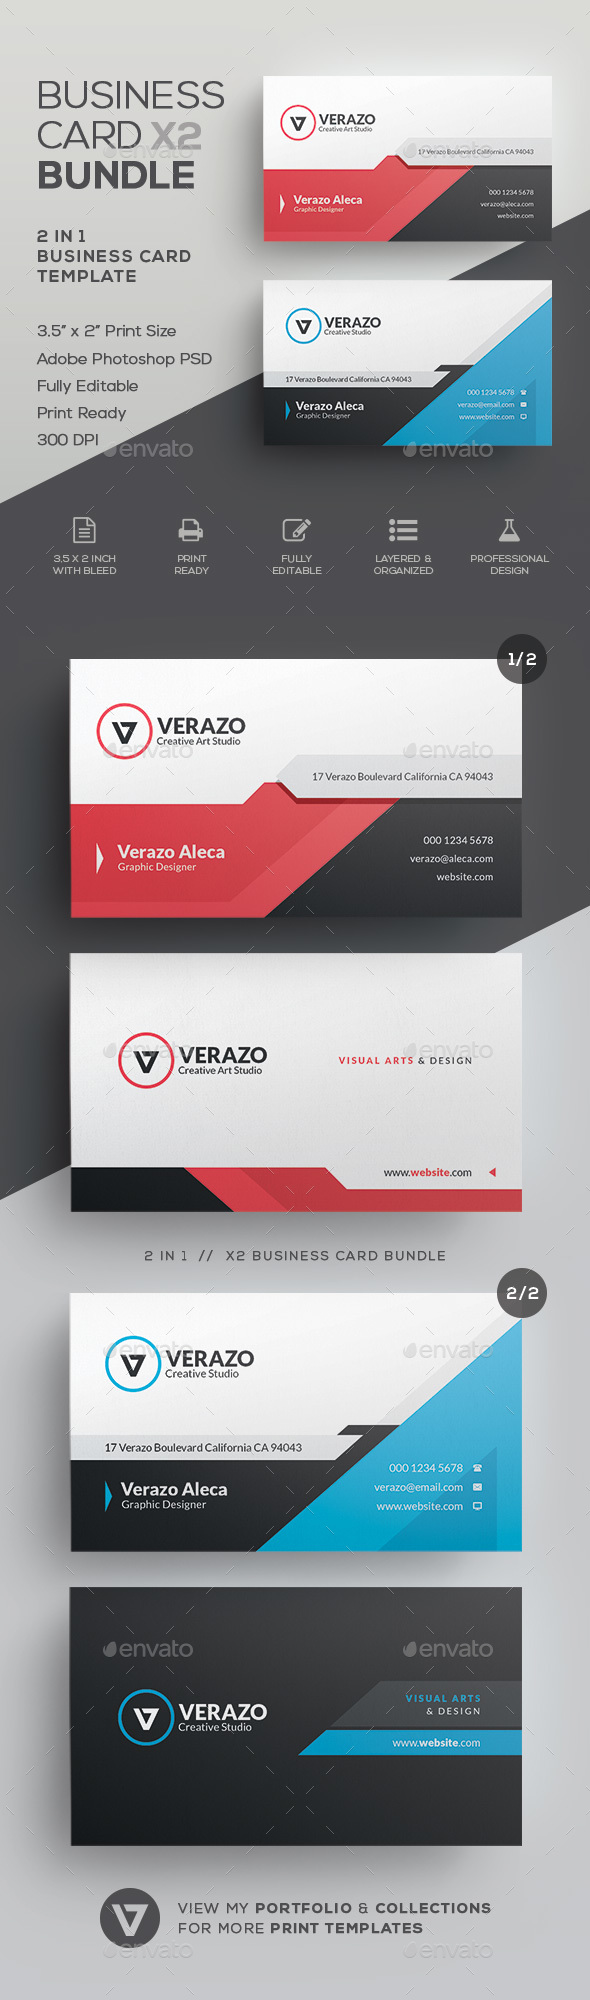 Business card print template psd mandegarfo business card print template psd flashek Choice Image